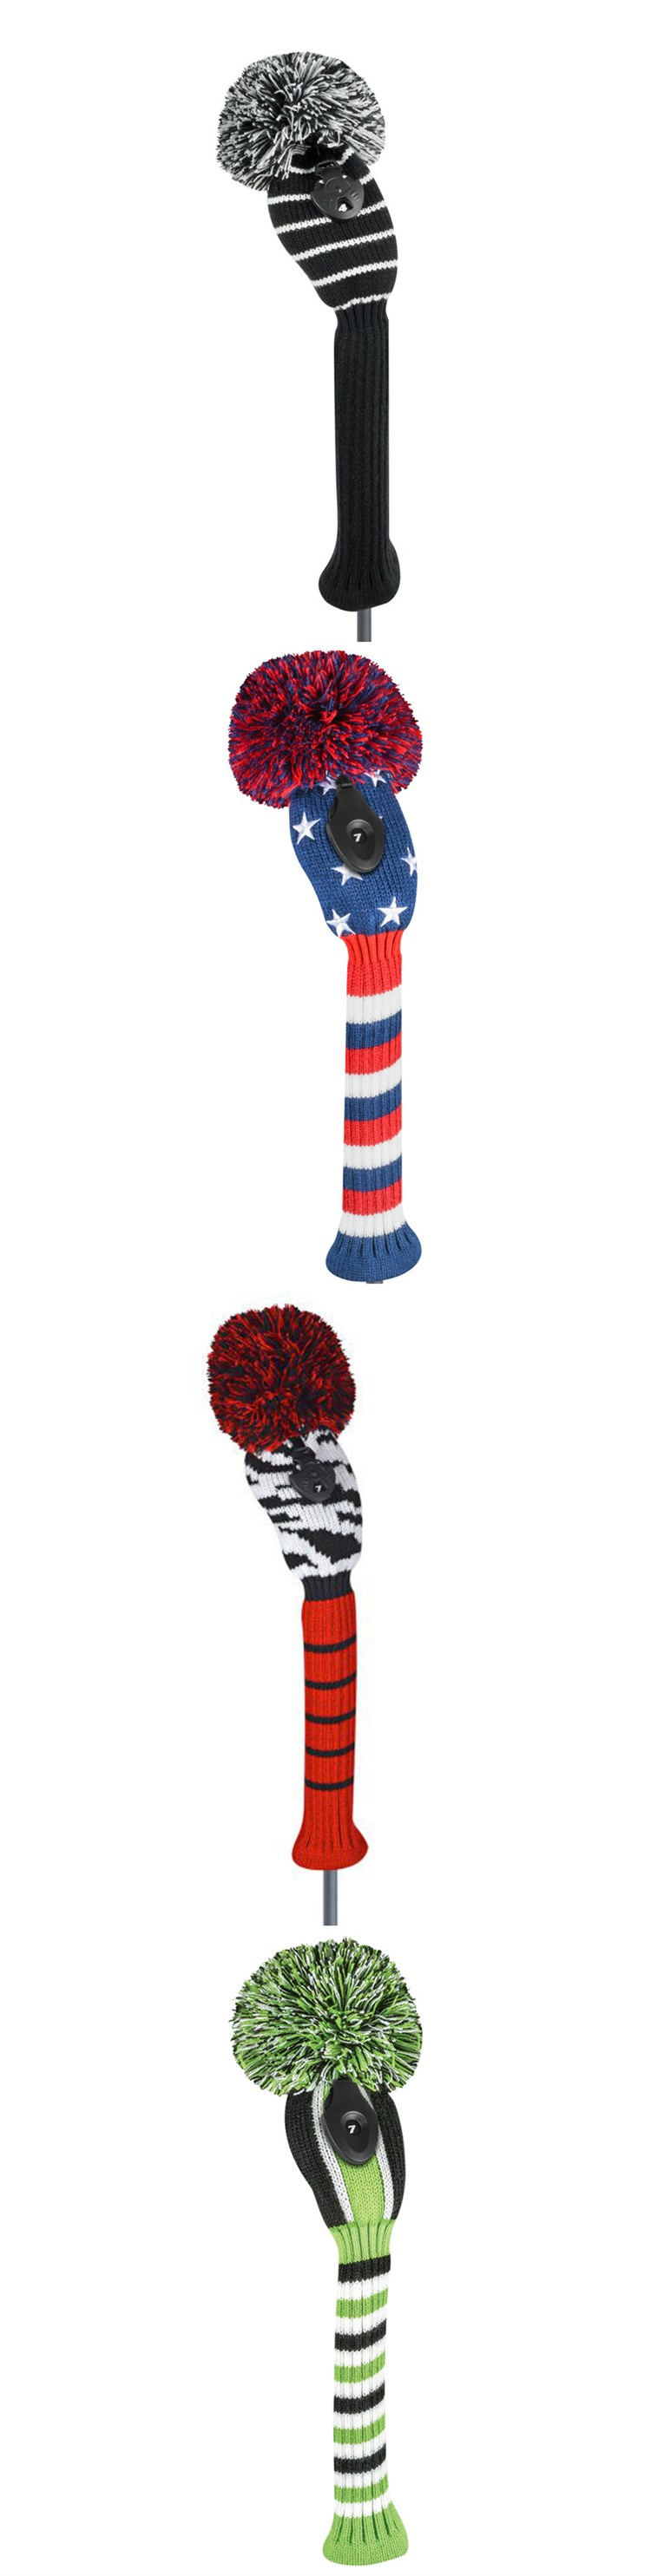 2020 knitted golf club head covers driver Pom Pom number tag golf head covers custom made golf driver head cover